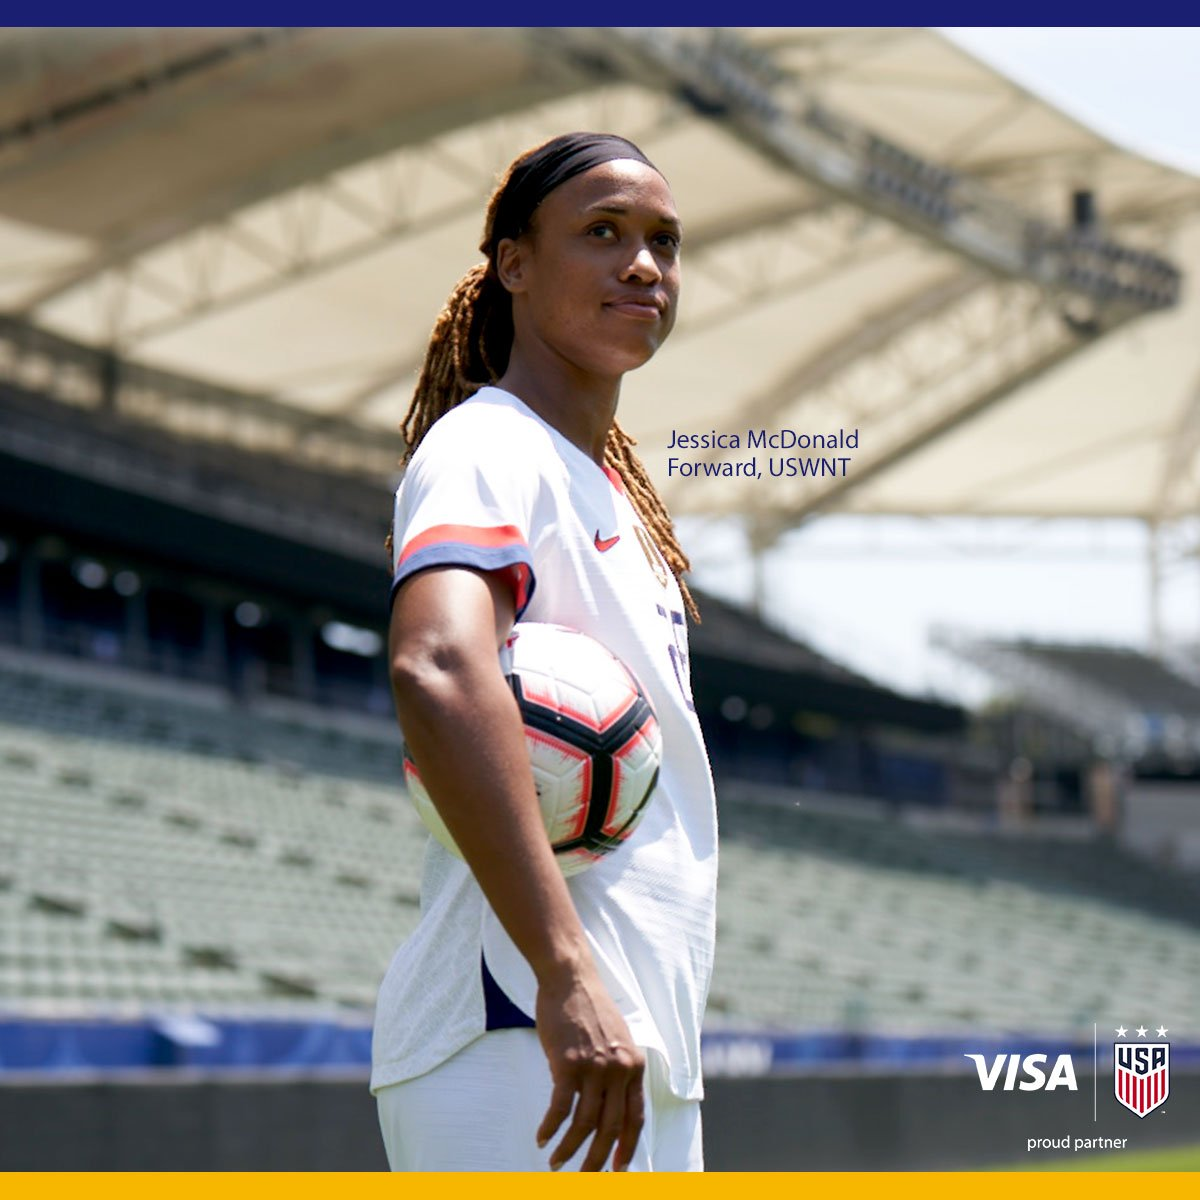 Jessica McDonald (@J_Mac1422) and the @USWNT look to close out group play with a win as they take on Sweden. Good luck!  Visa. Proud partner of the U.S. Women's National Team.